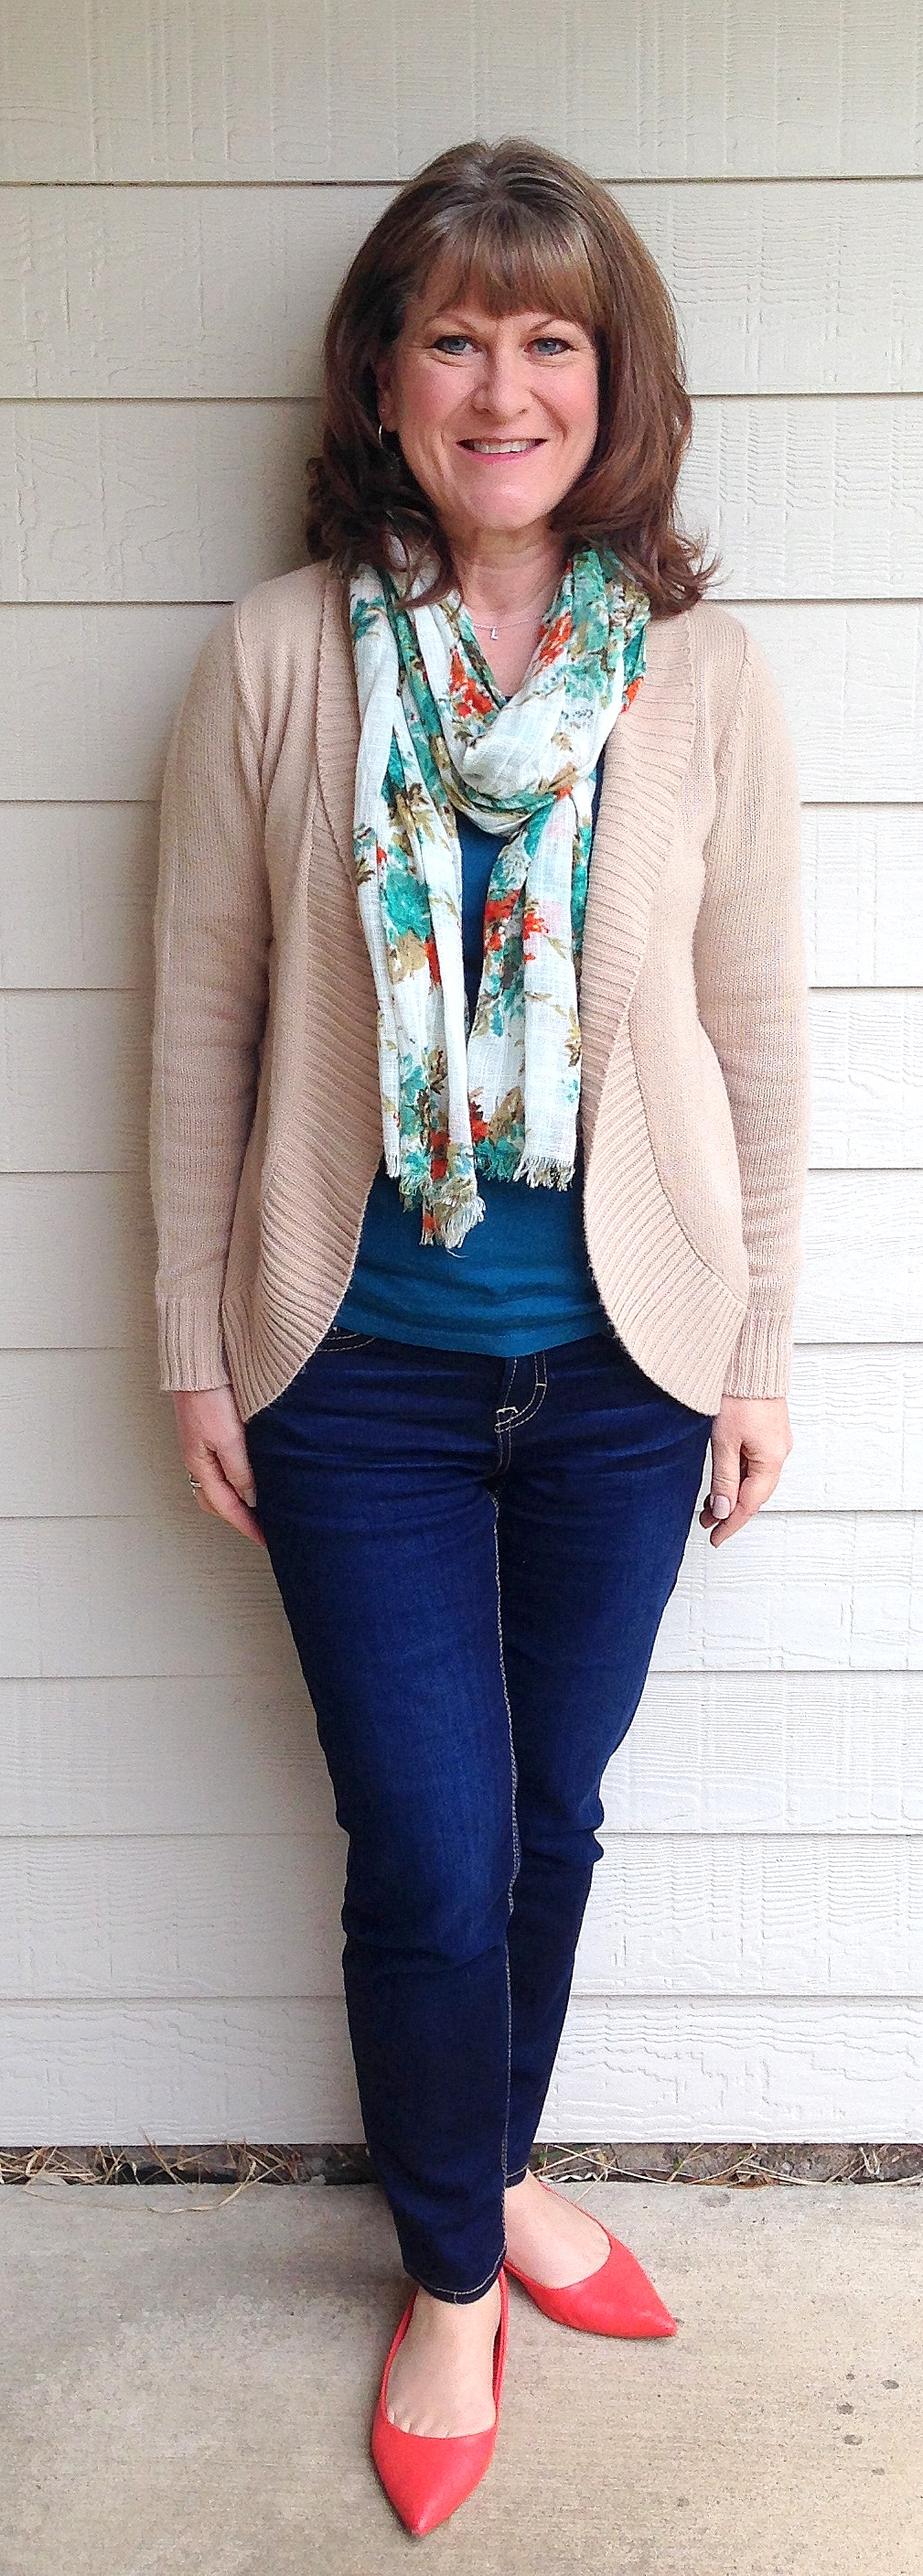 Casual clothing for women over 50